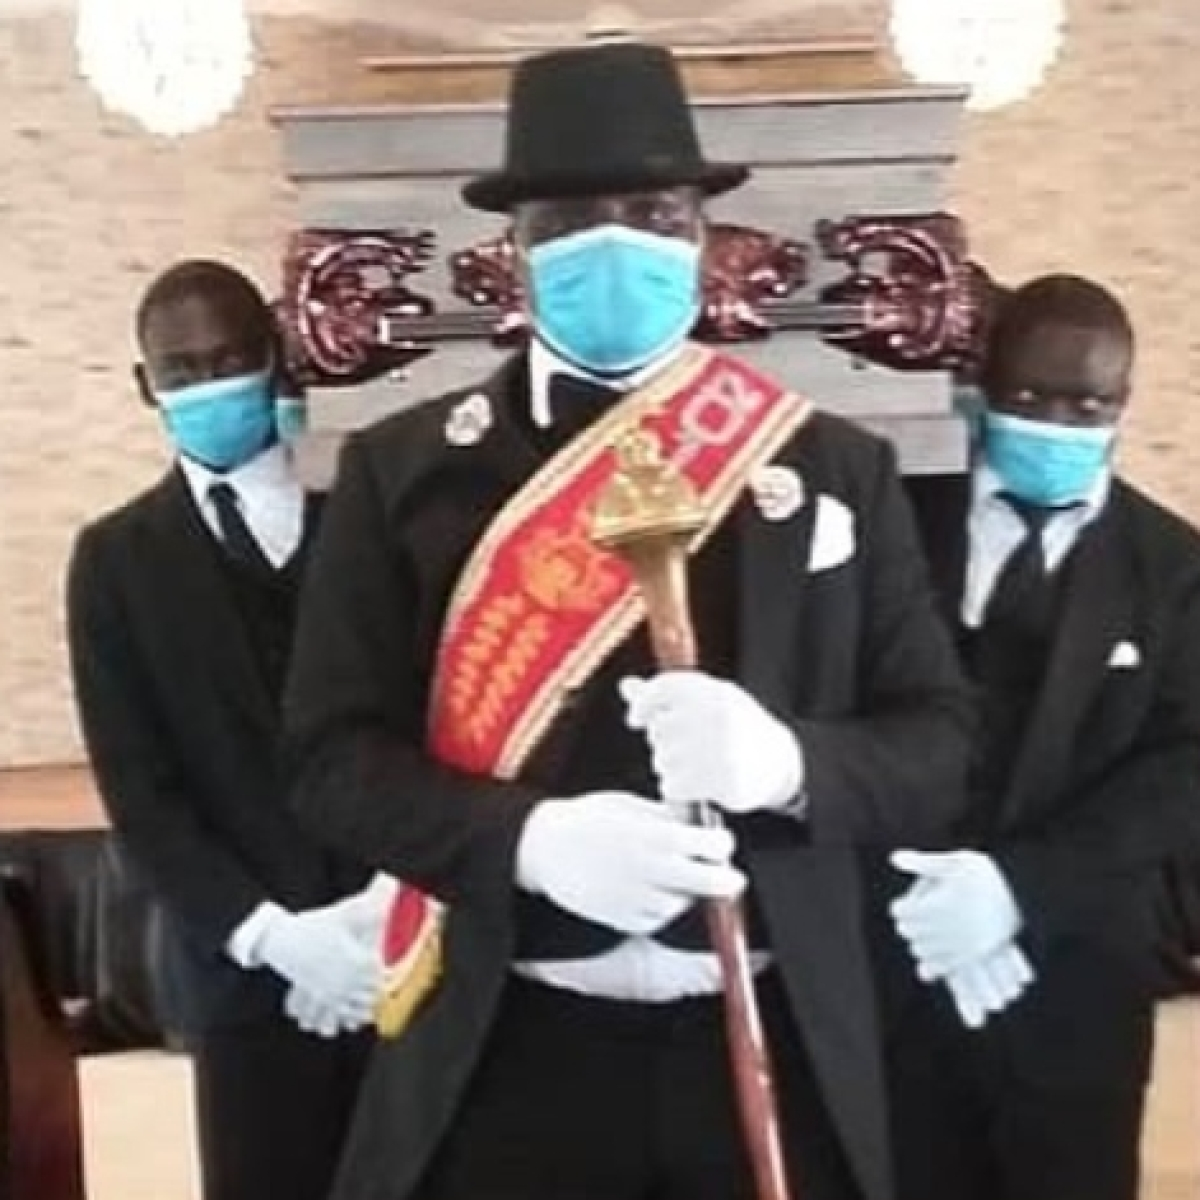 Revealed - what the the viral Ghanaian pallbearers really think of your memes amid COVID-19 pandemic